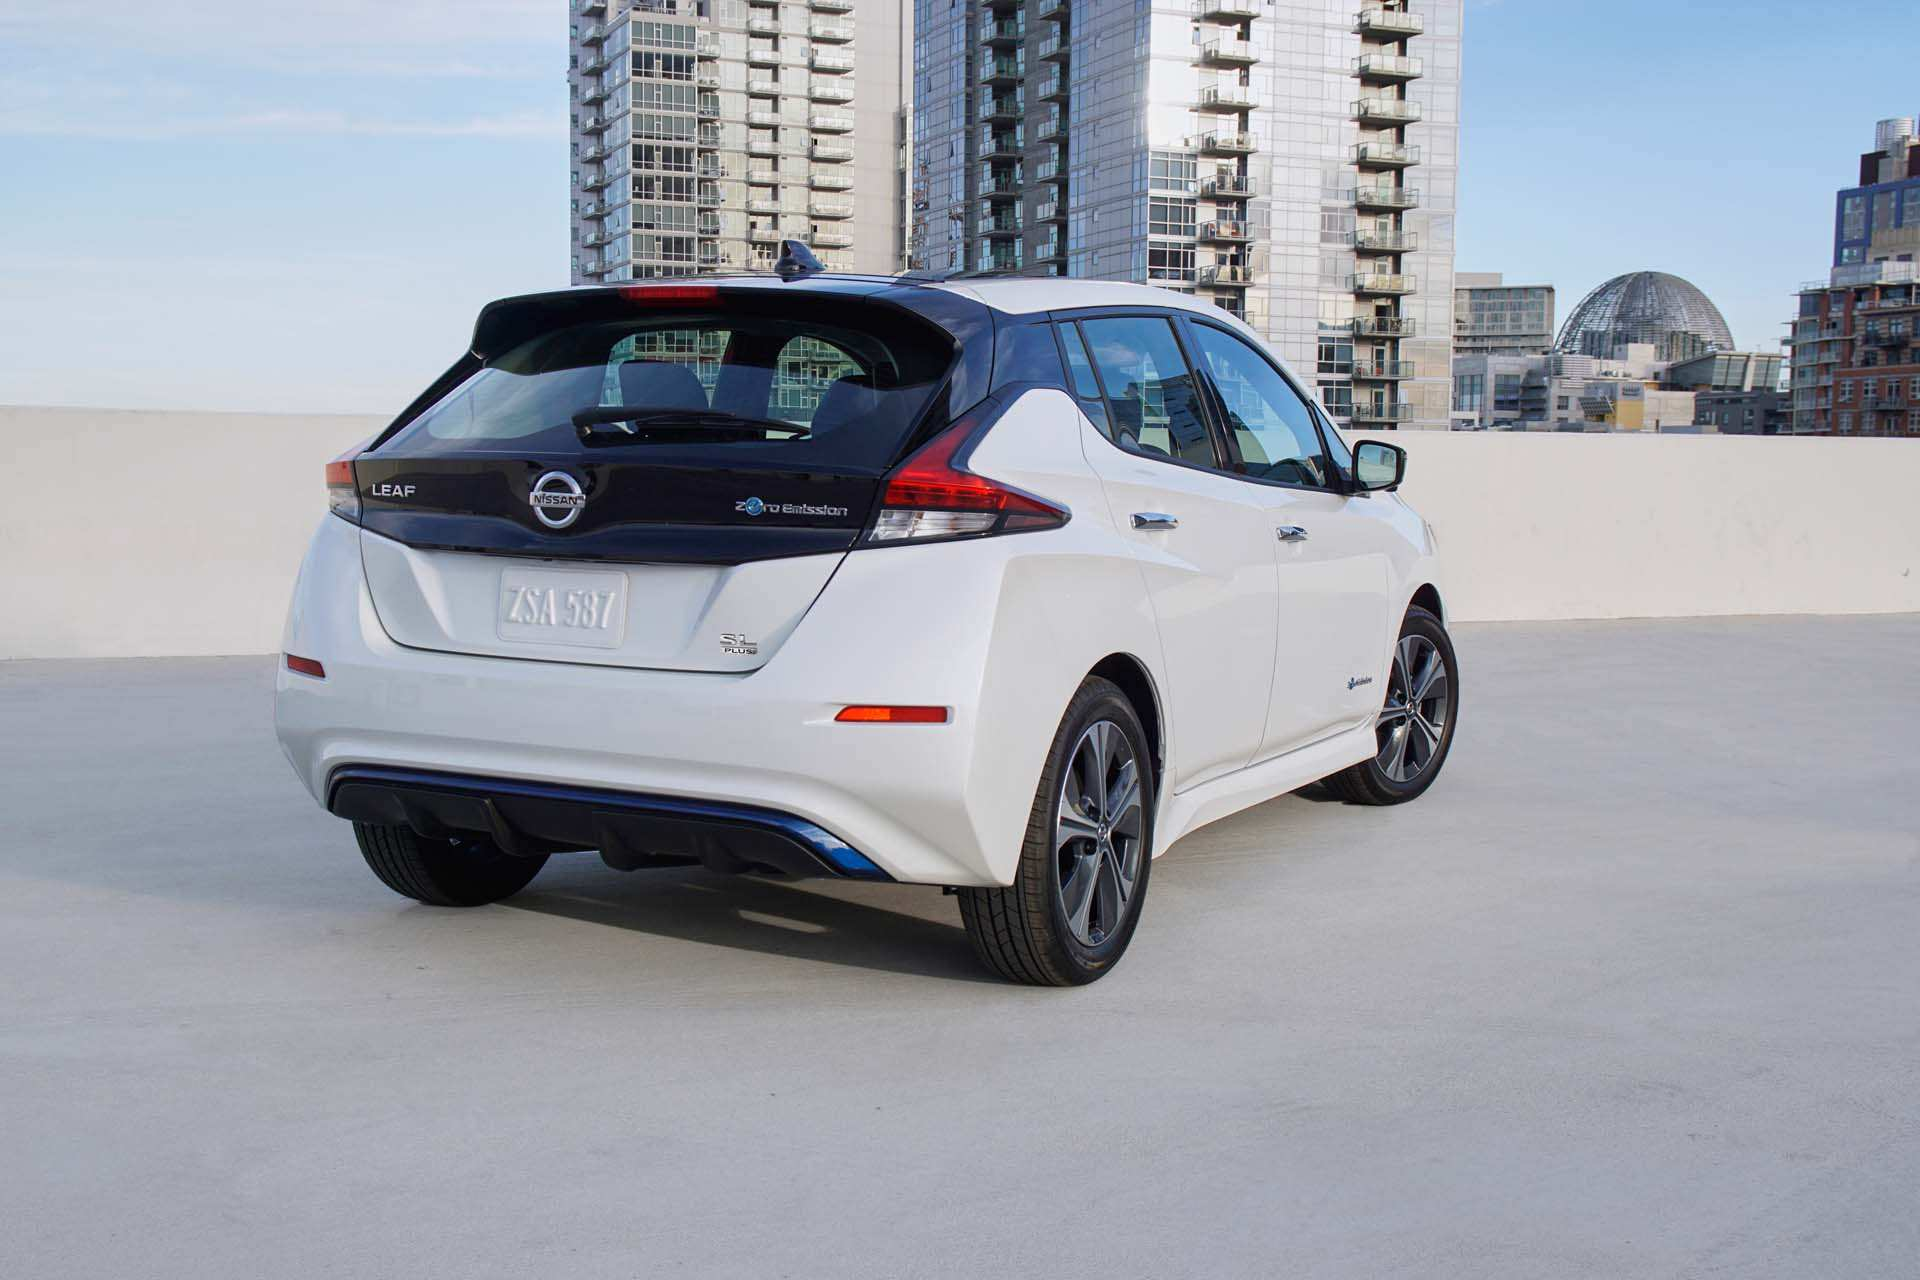 89 A 2020 Nissan Leaf Range New Model And Performance